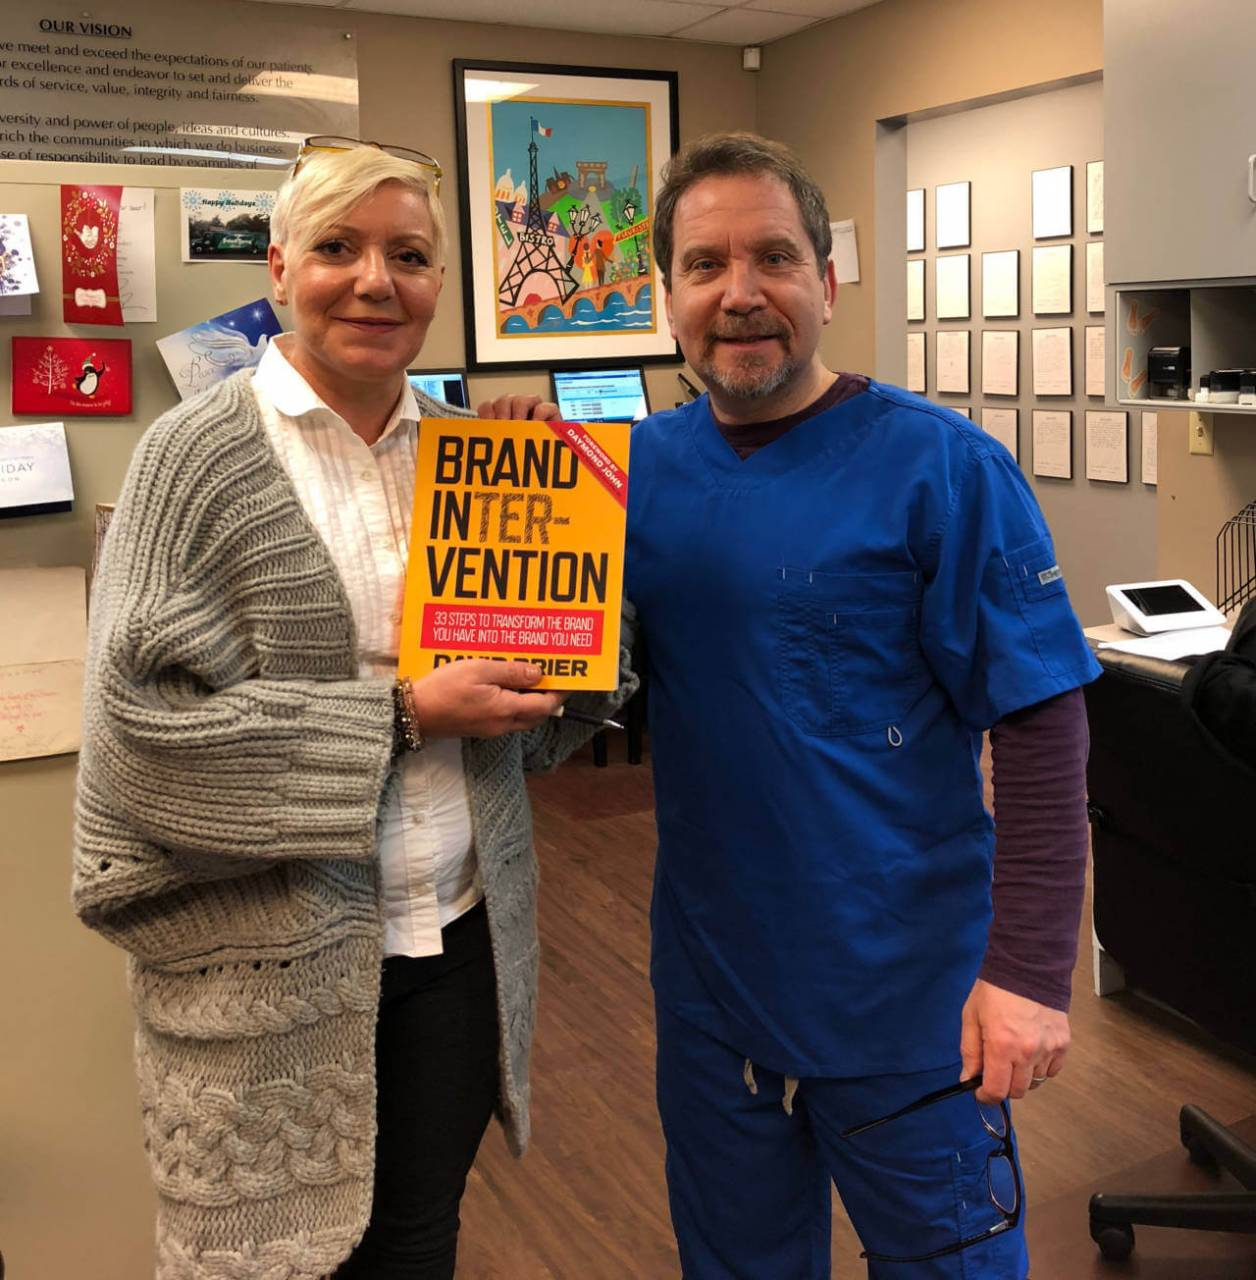 Brand Intervention and a Book owner start a movement